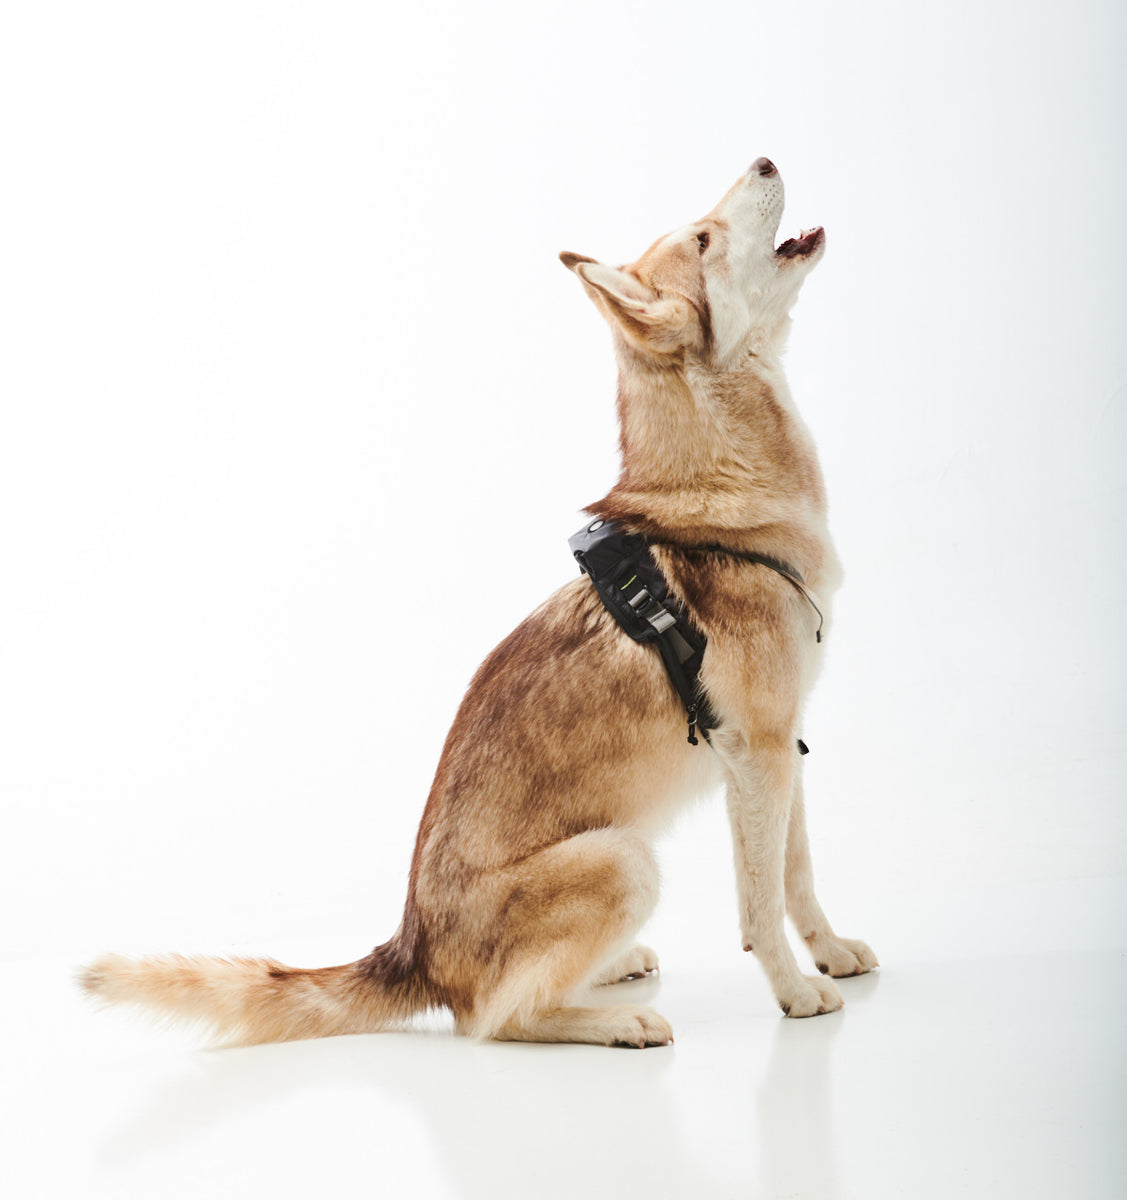 Husky dog wearing harness, howling.